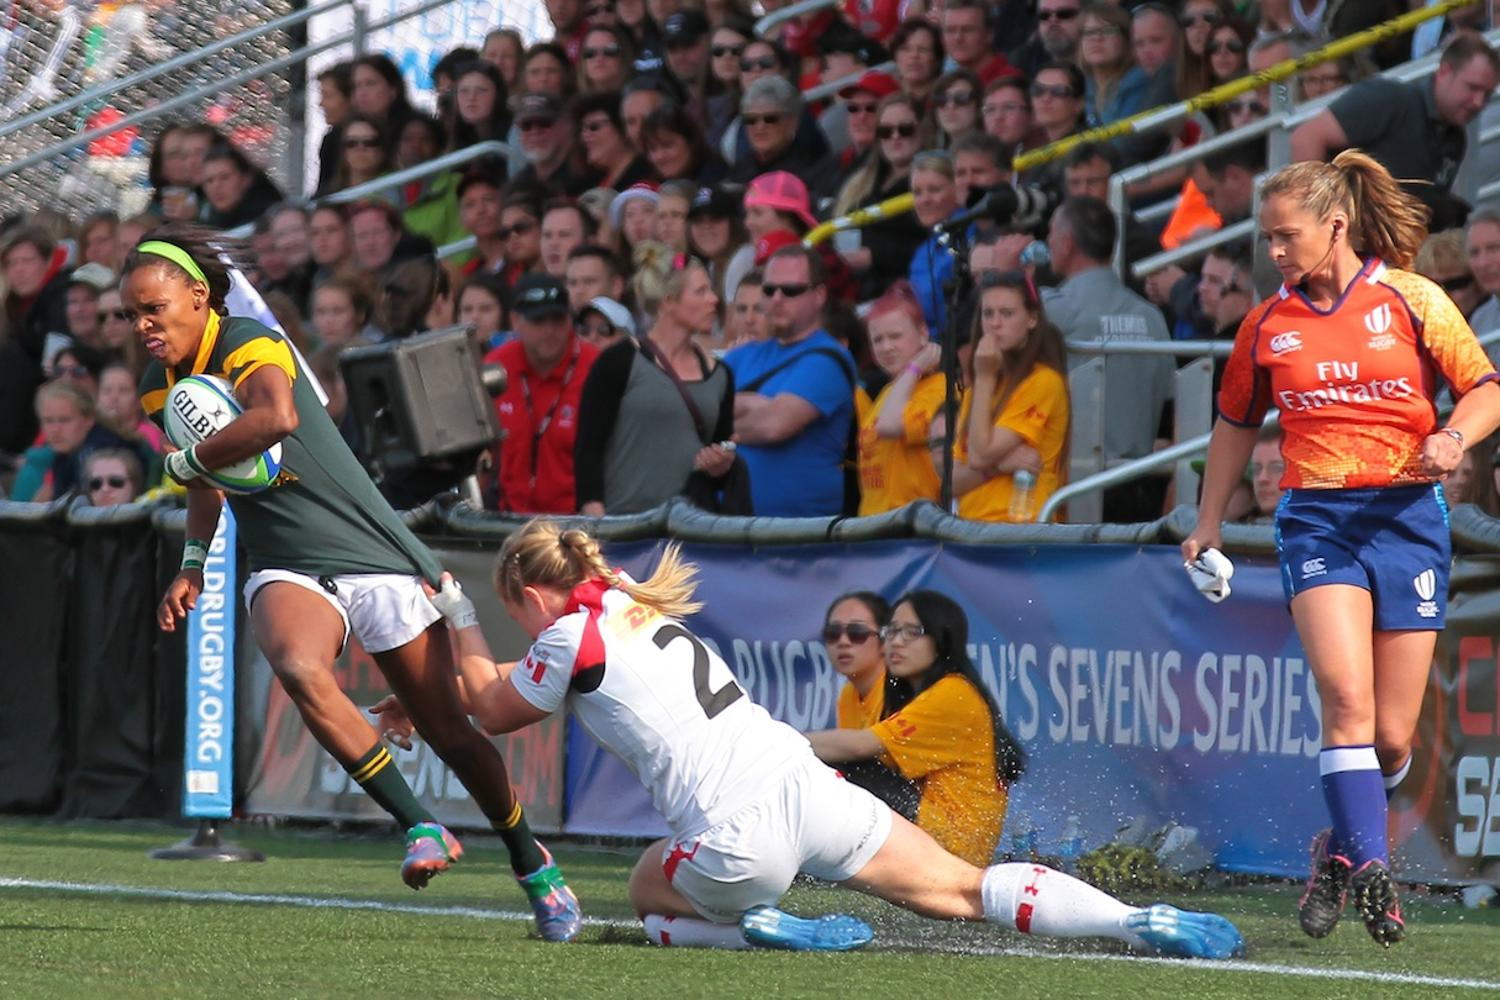 Women's Sevens Series: Canada v South Africa